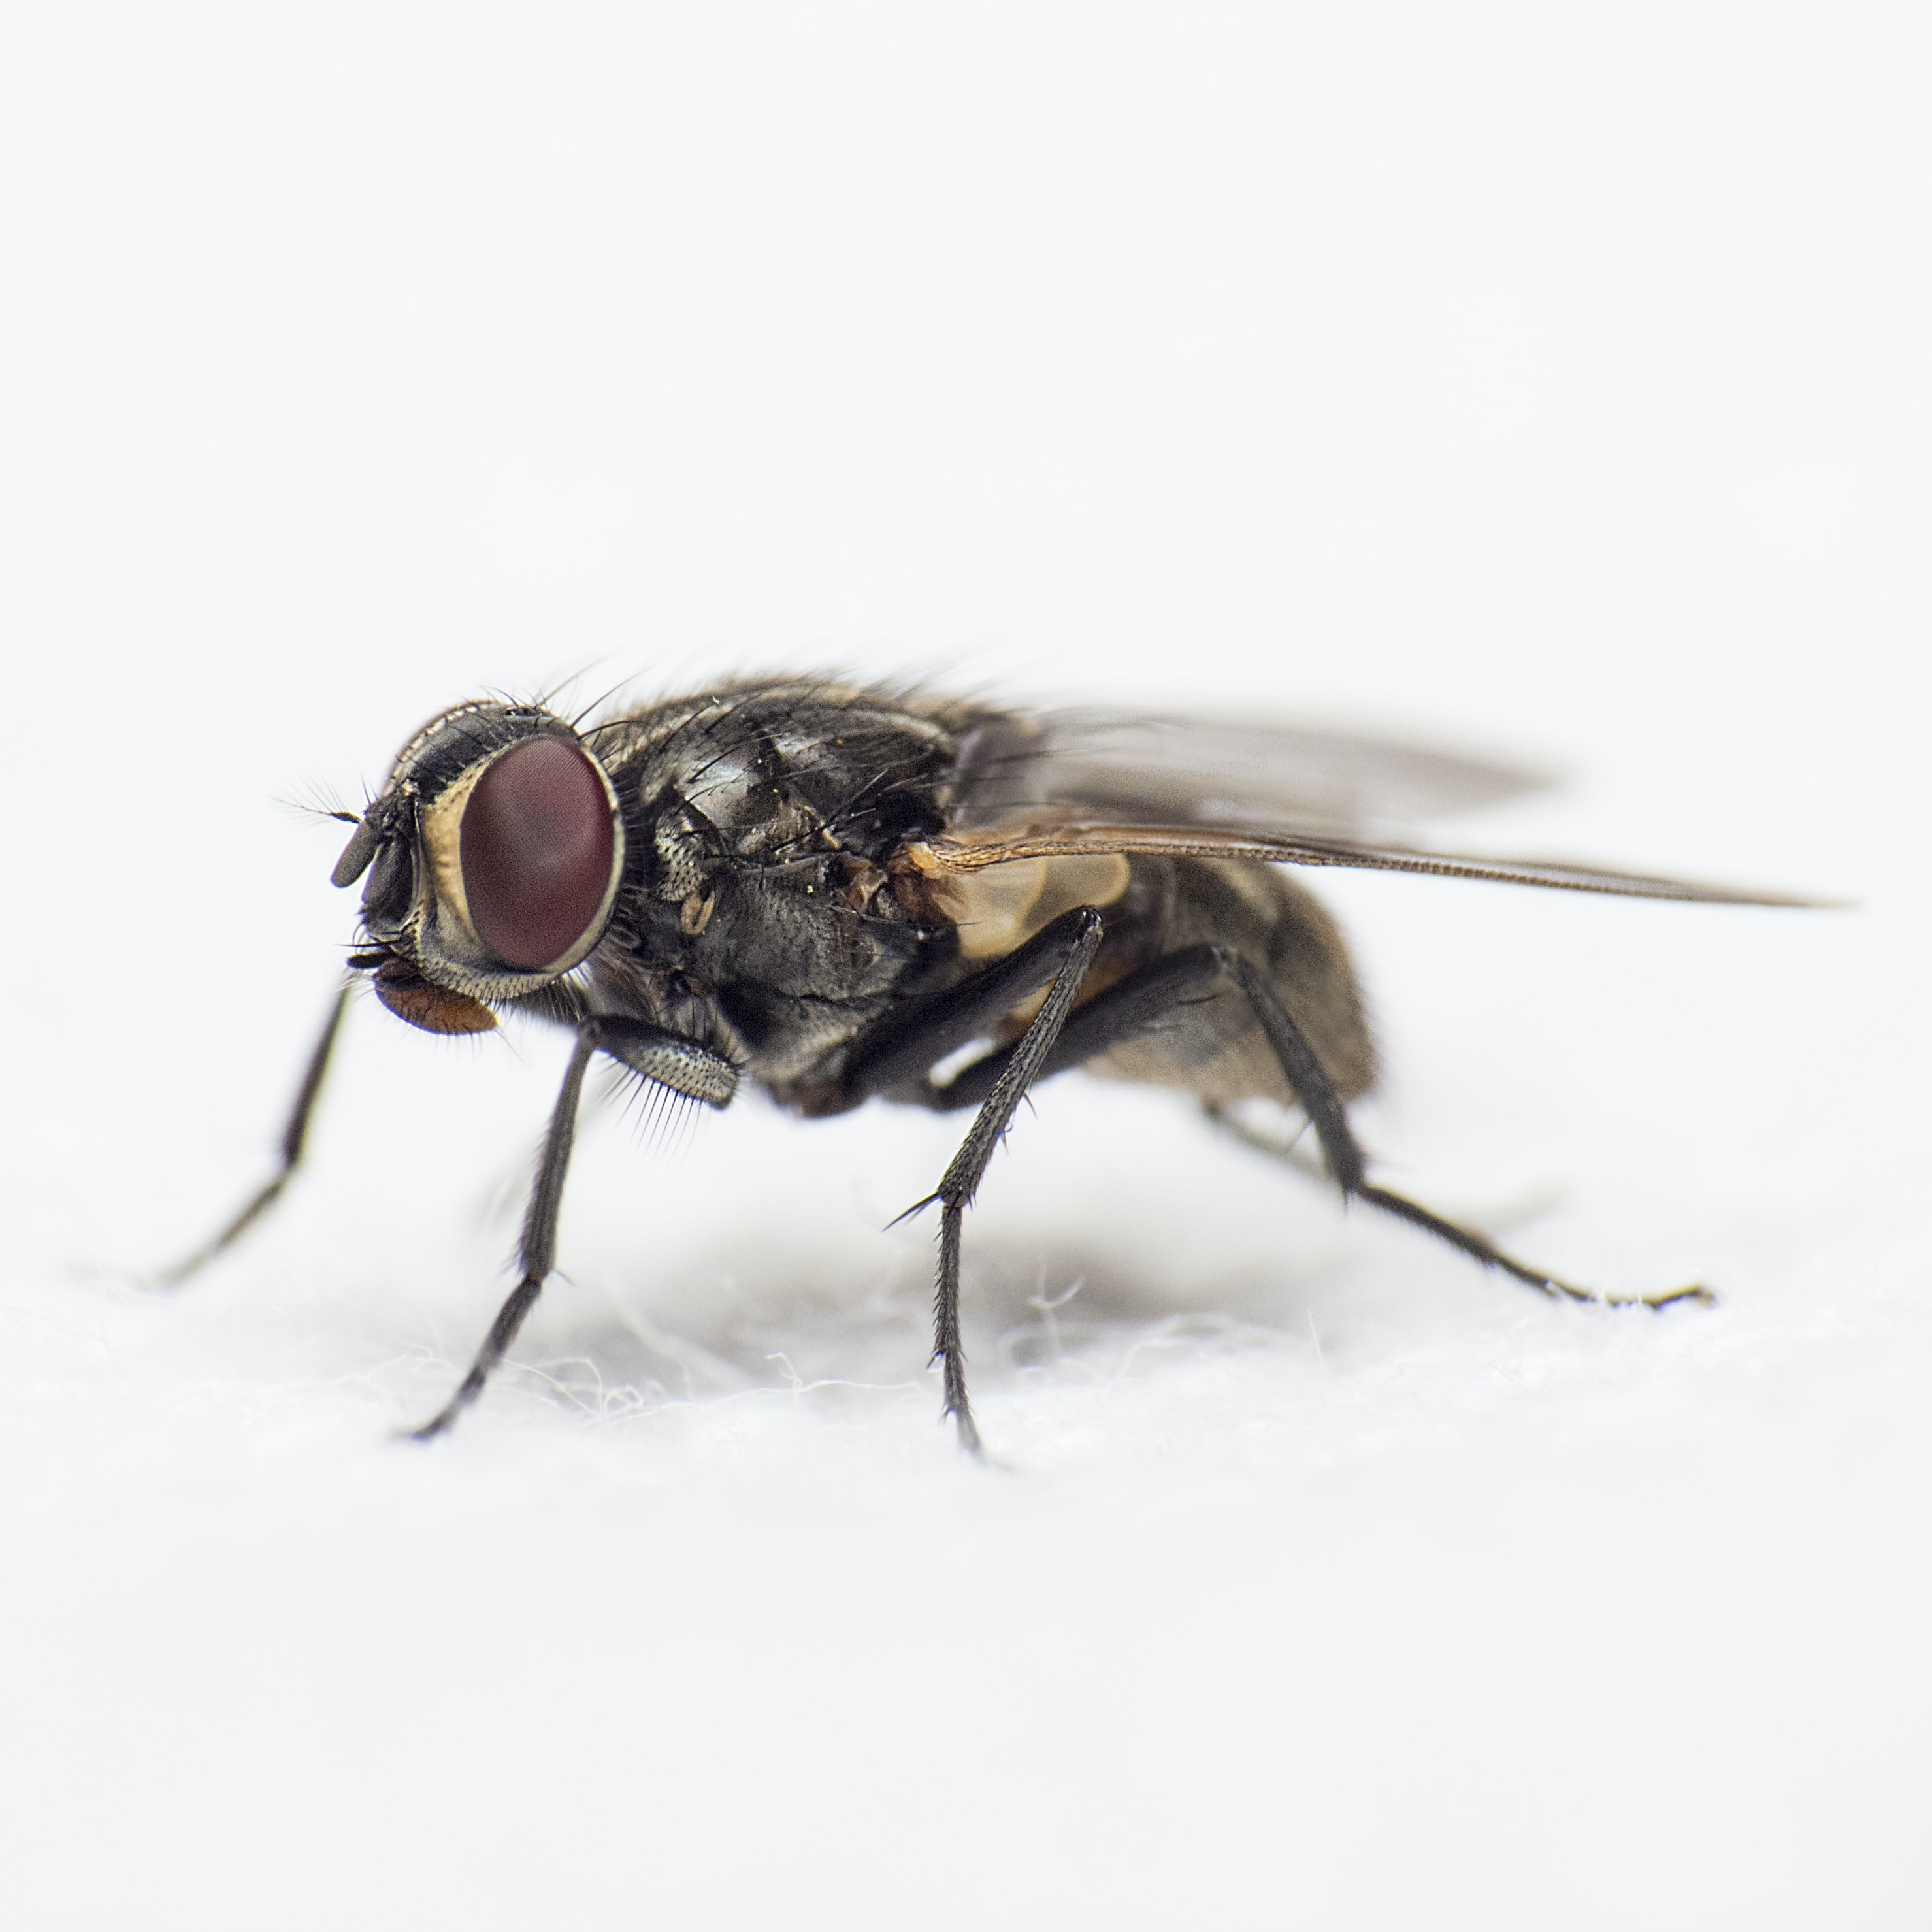 close-up photography of black common housefly